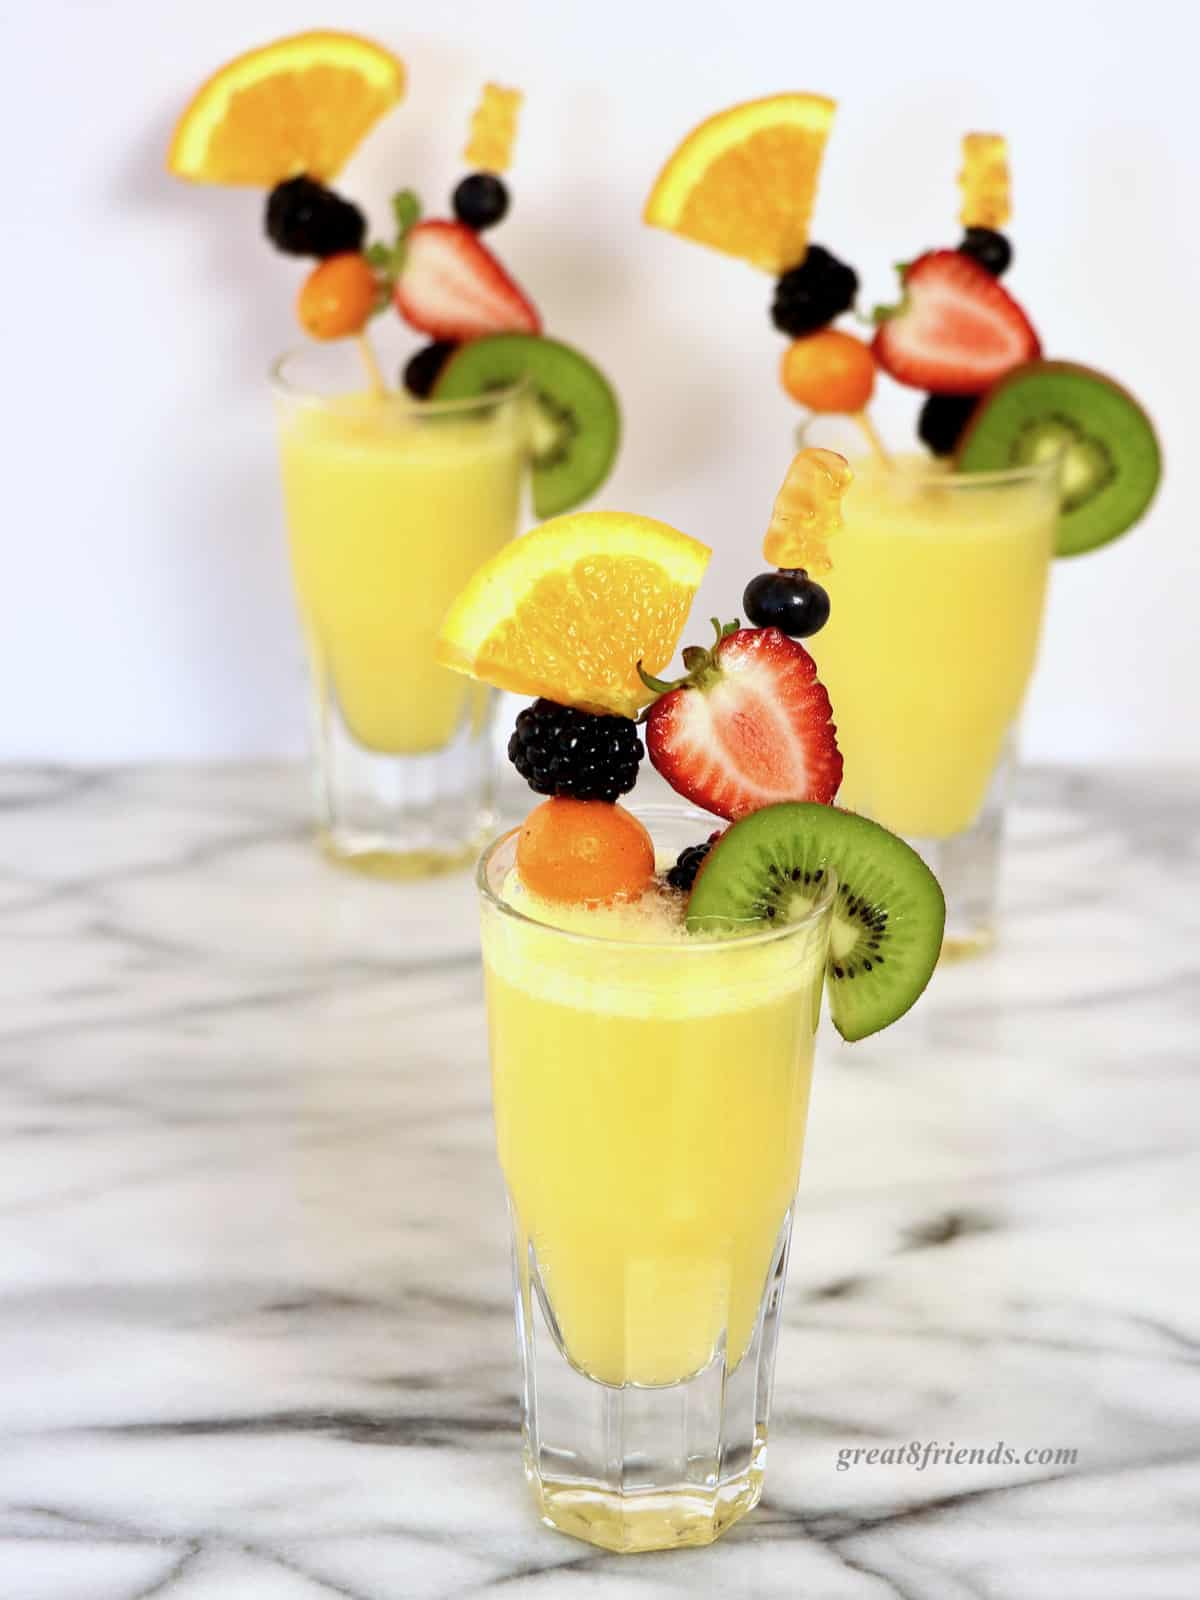 A mimosa garnished with 2 skewers of fresh fruit, with 2 more mimosas in the background.